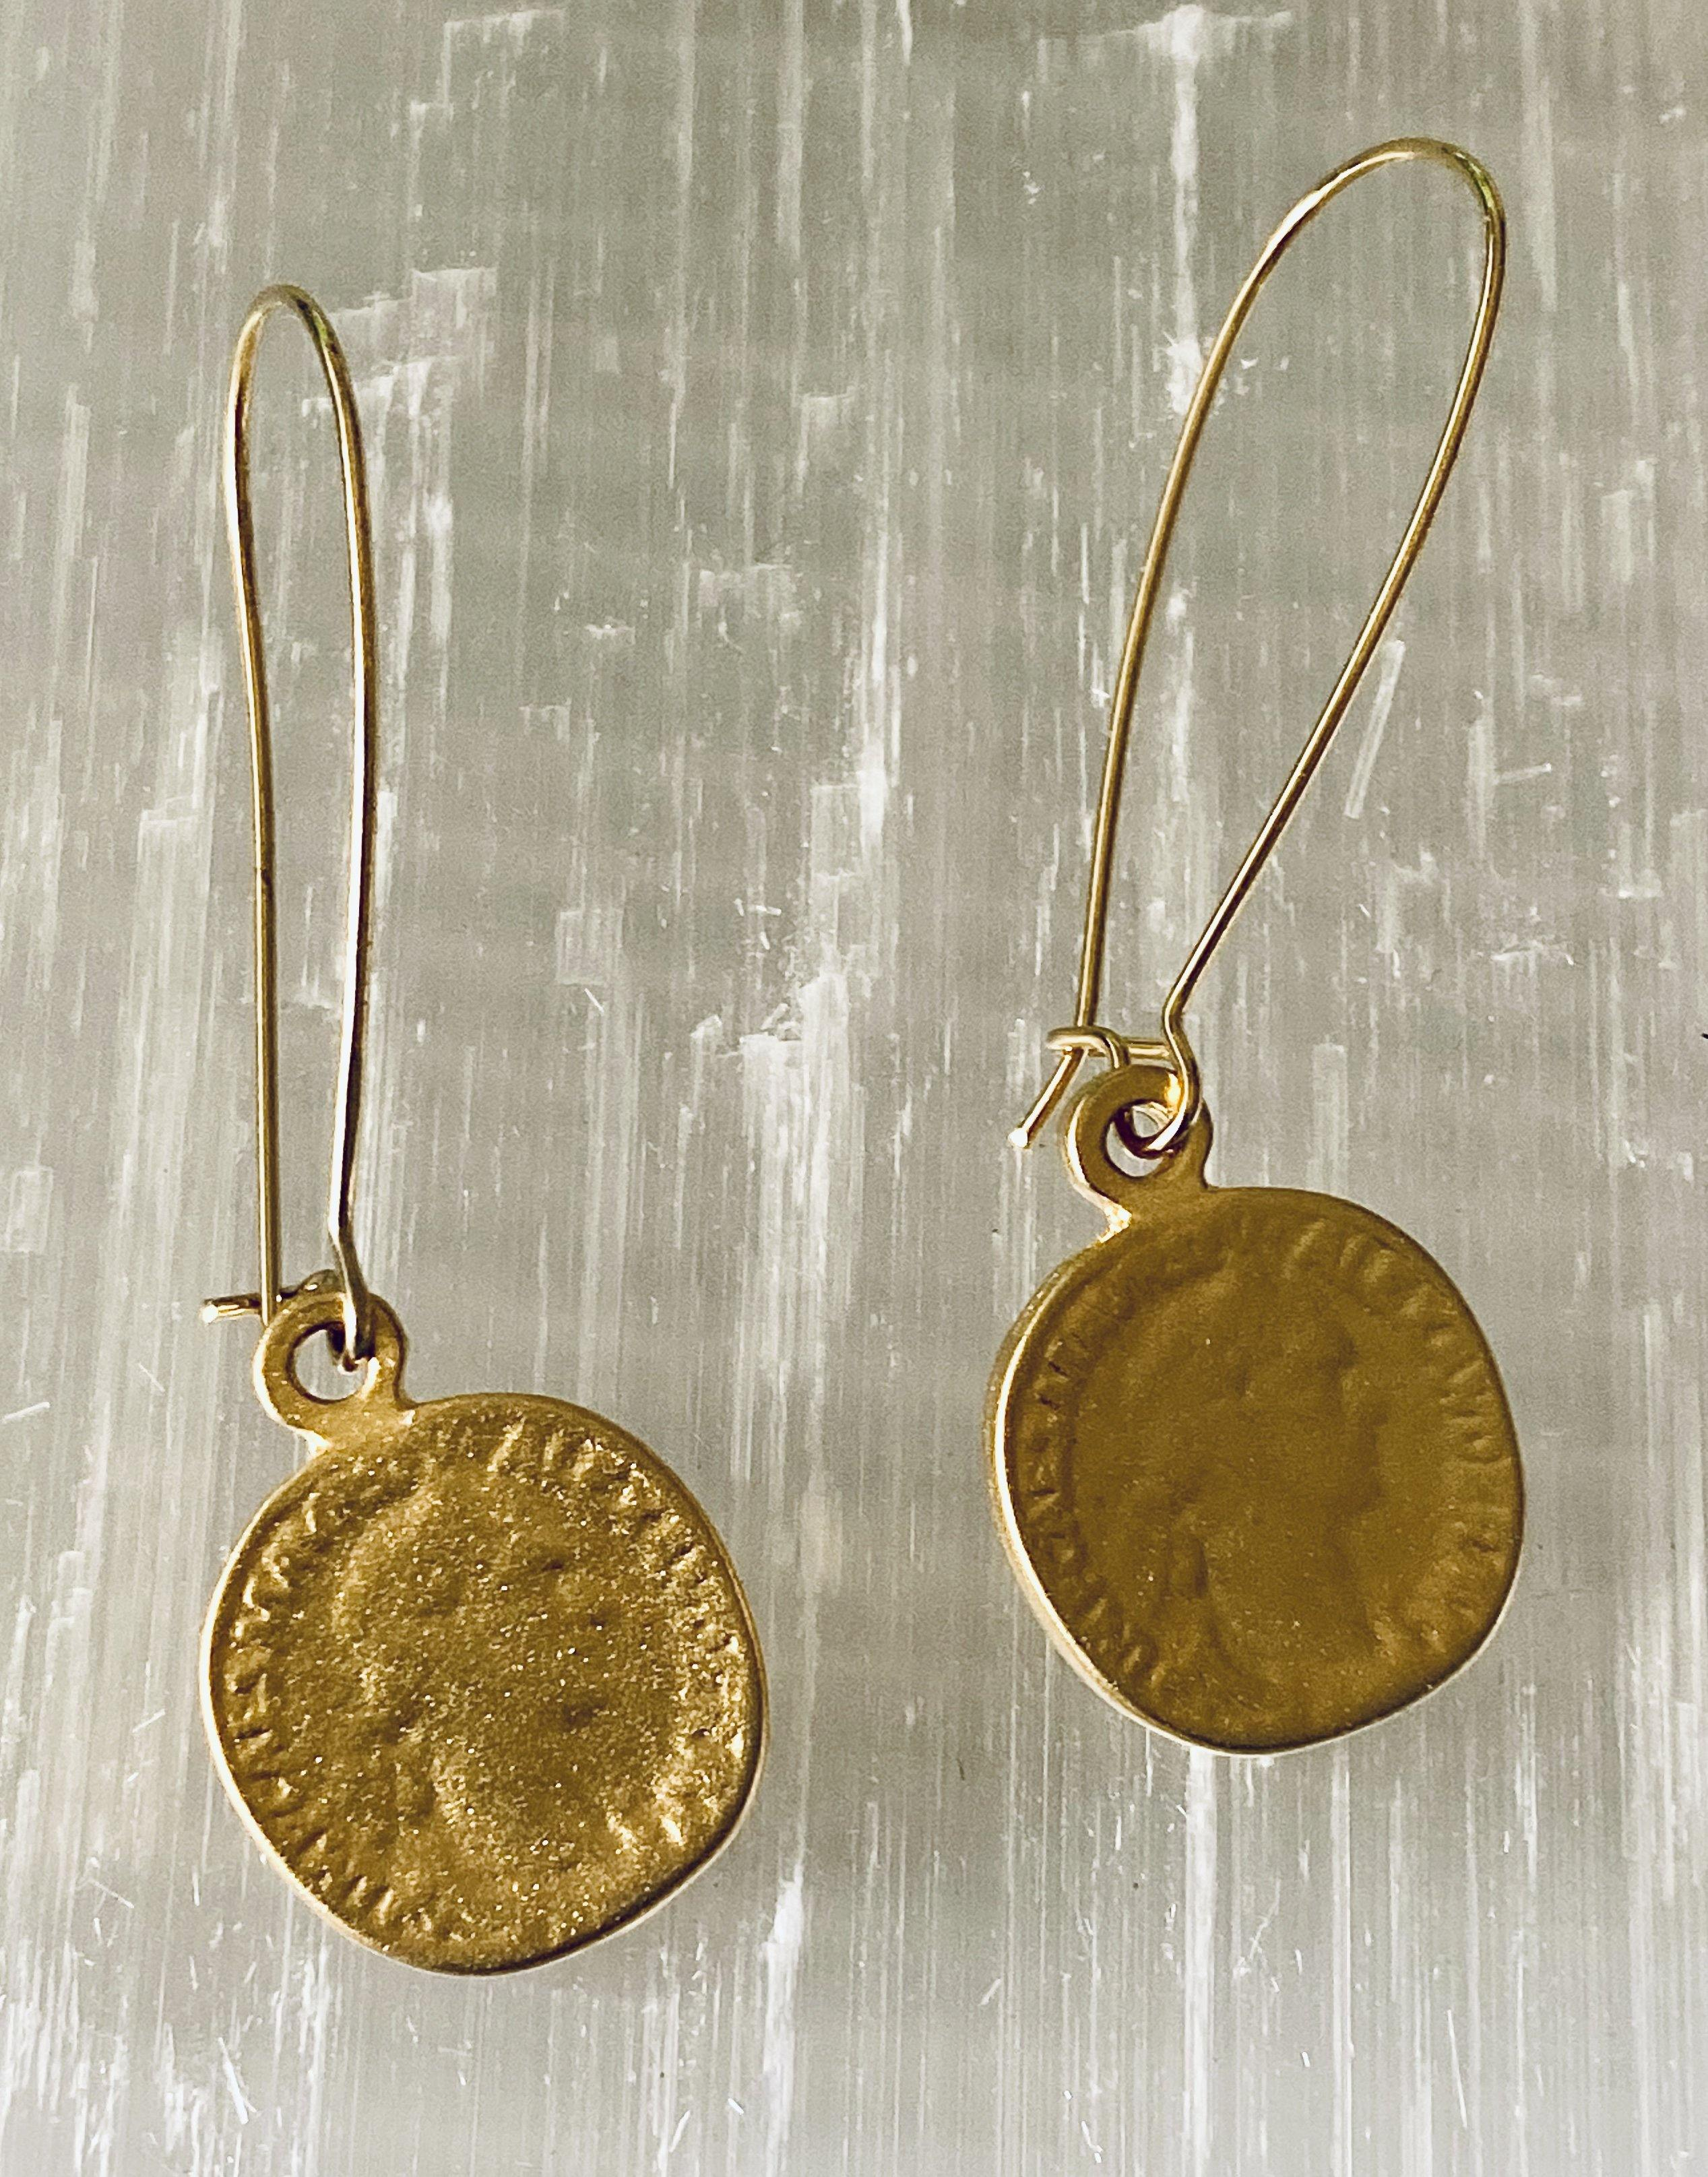 Gold Roman Coin Earrings - Irit Sorokin Designs Canadian handmade jewelry